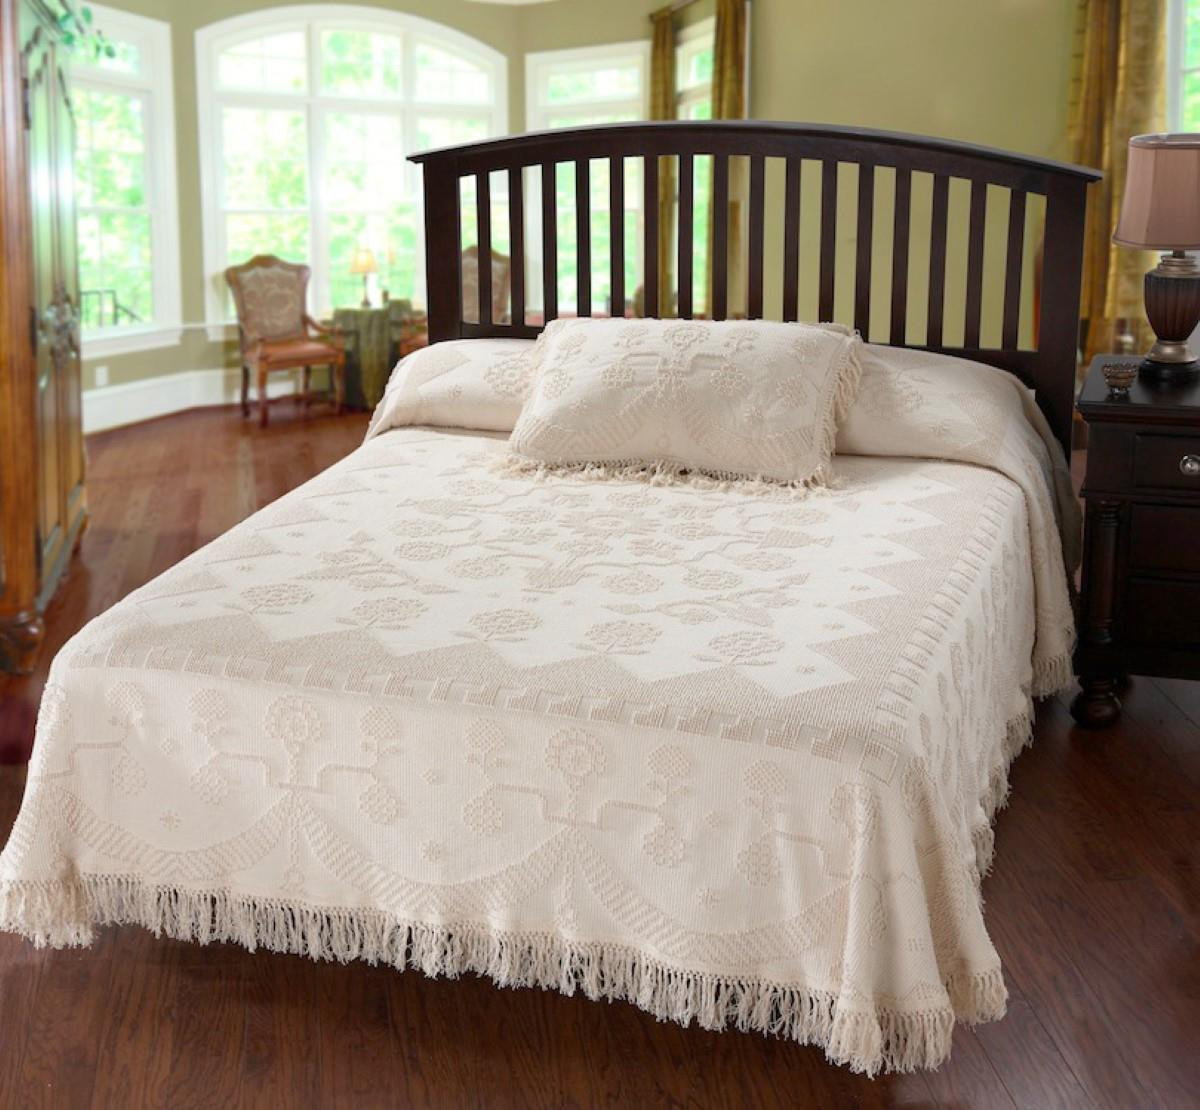 Martha Washington's Choice Bedspread - 184195000073